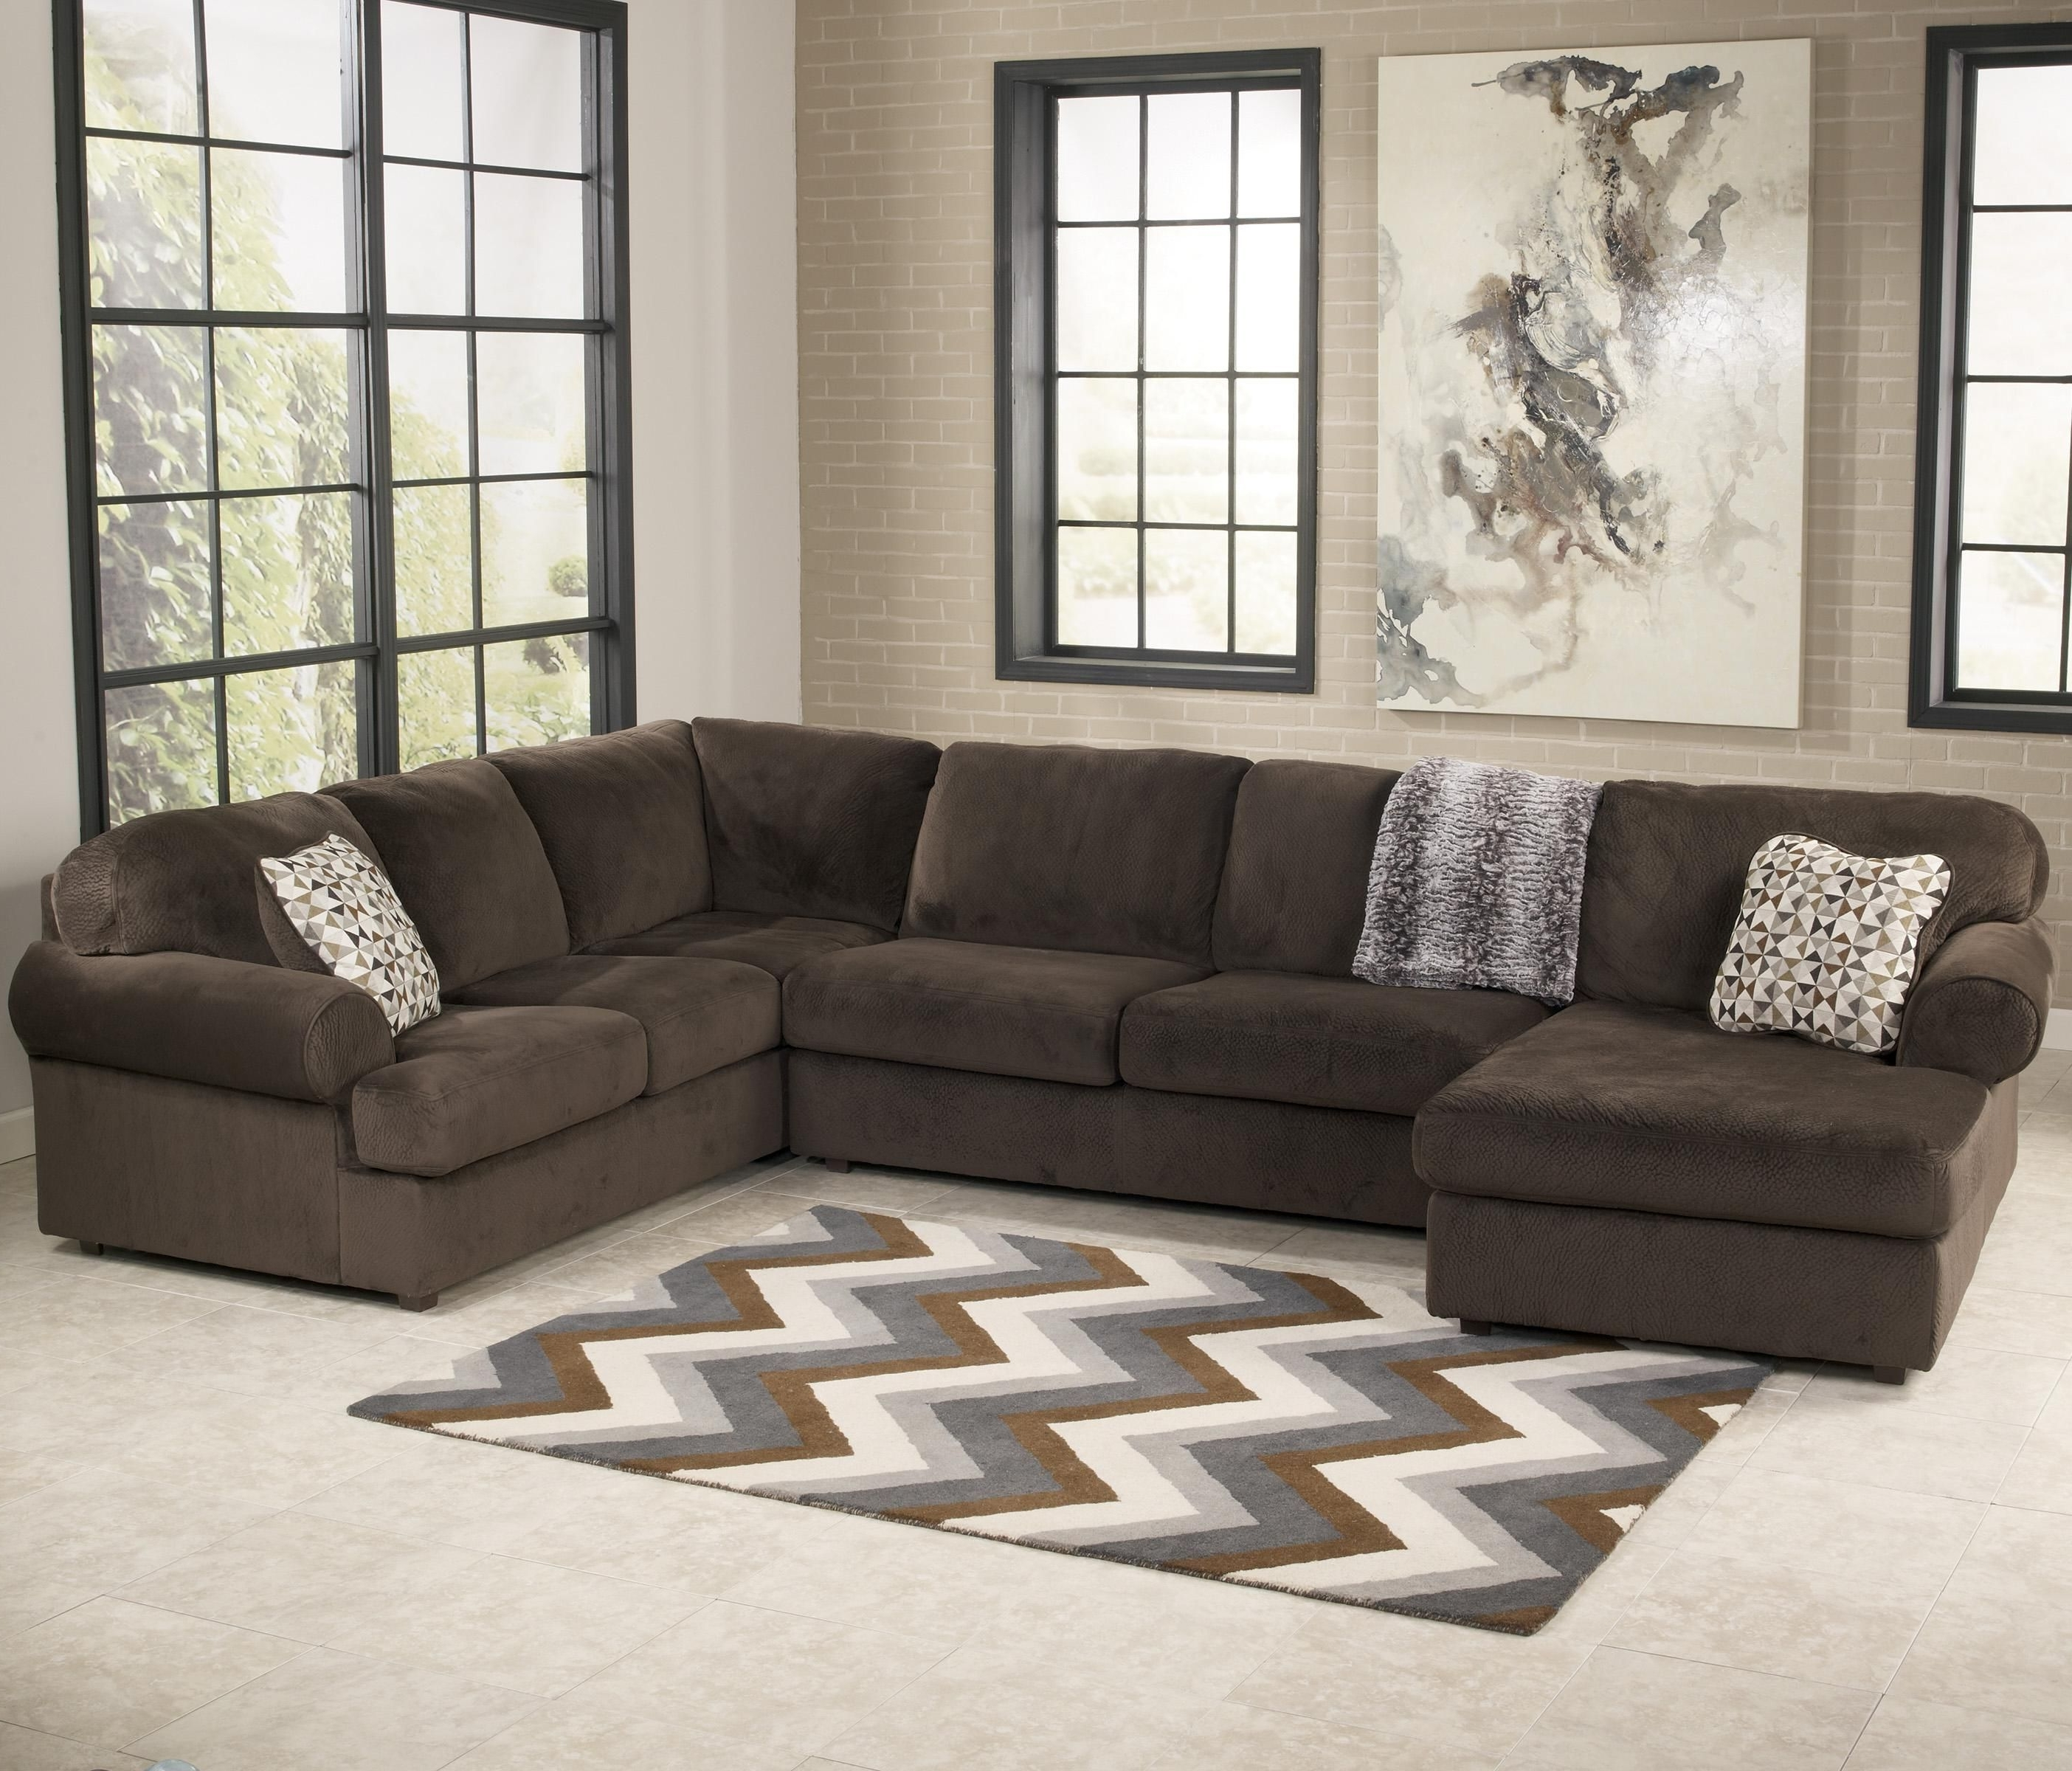 Jackson Ms Sectional Sofas throughout Trendy Jessa Place - Chocolate Casual Sectional Sofa With Left Chaise